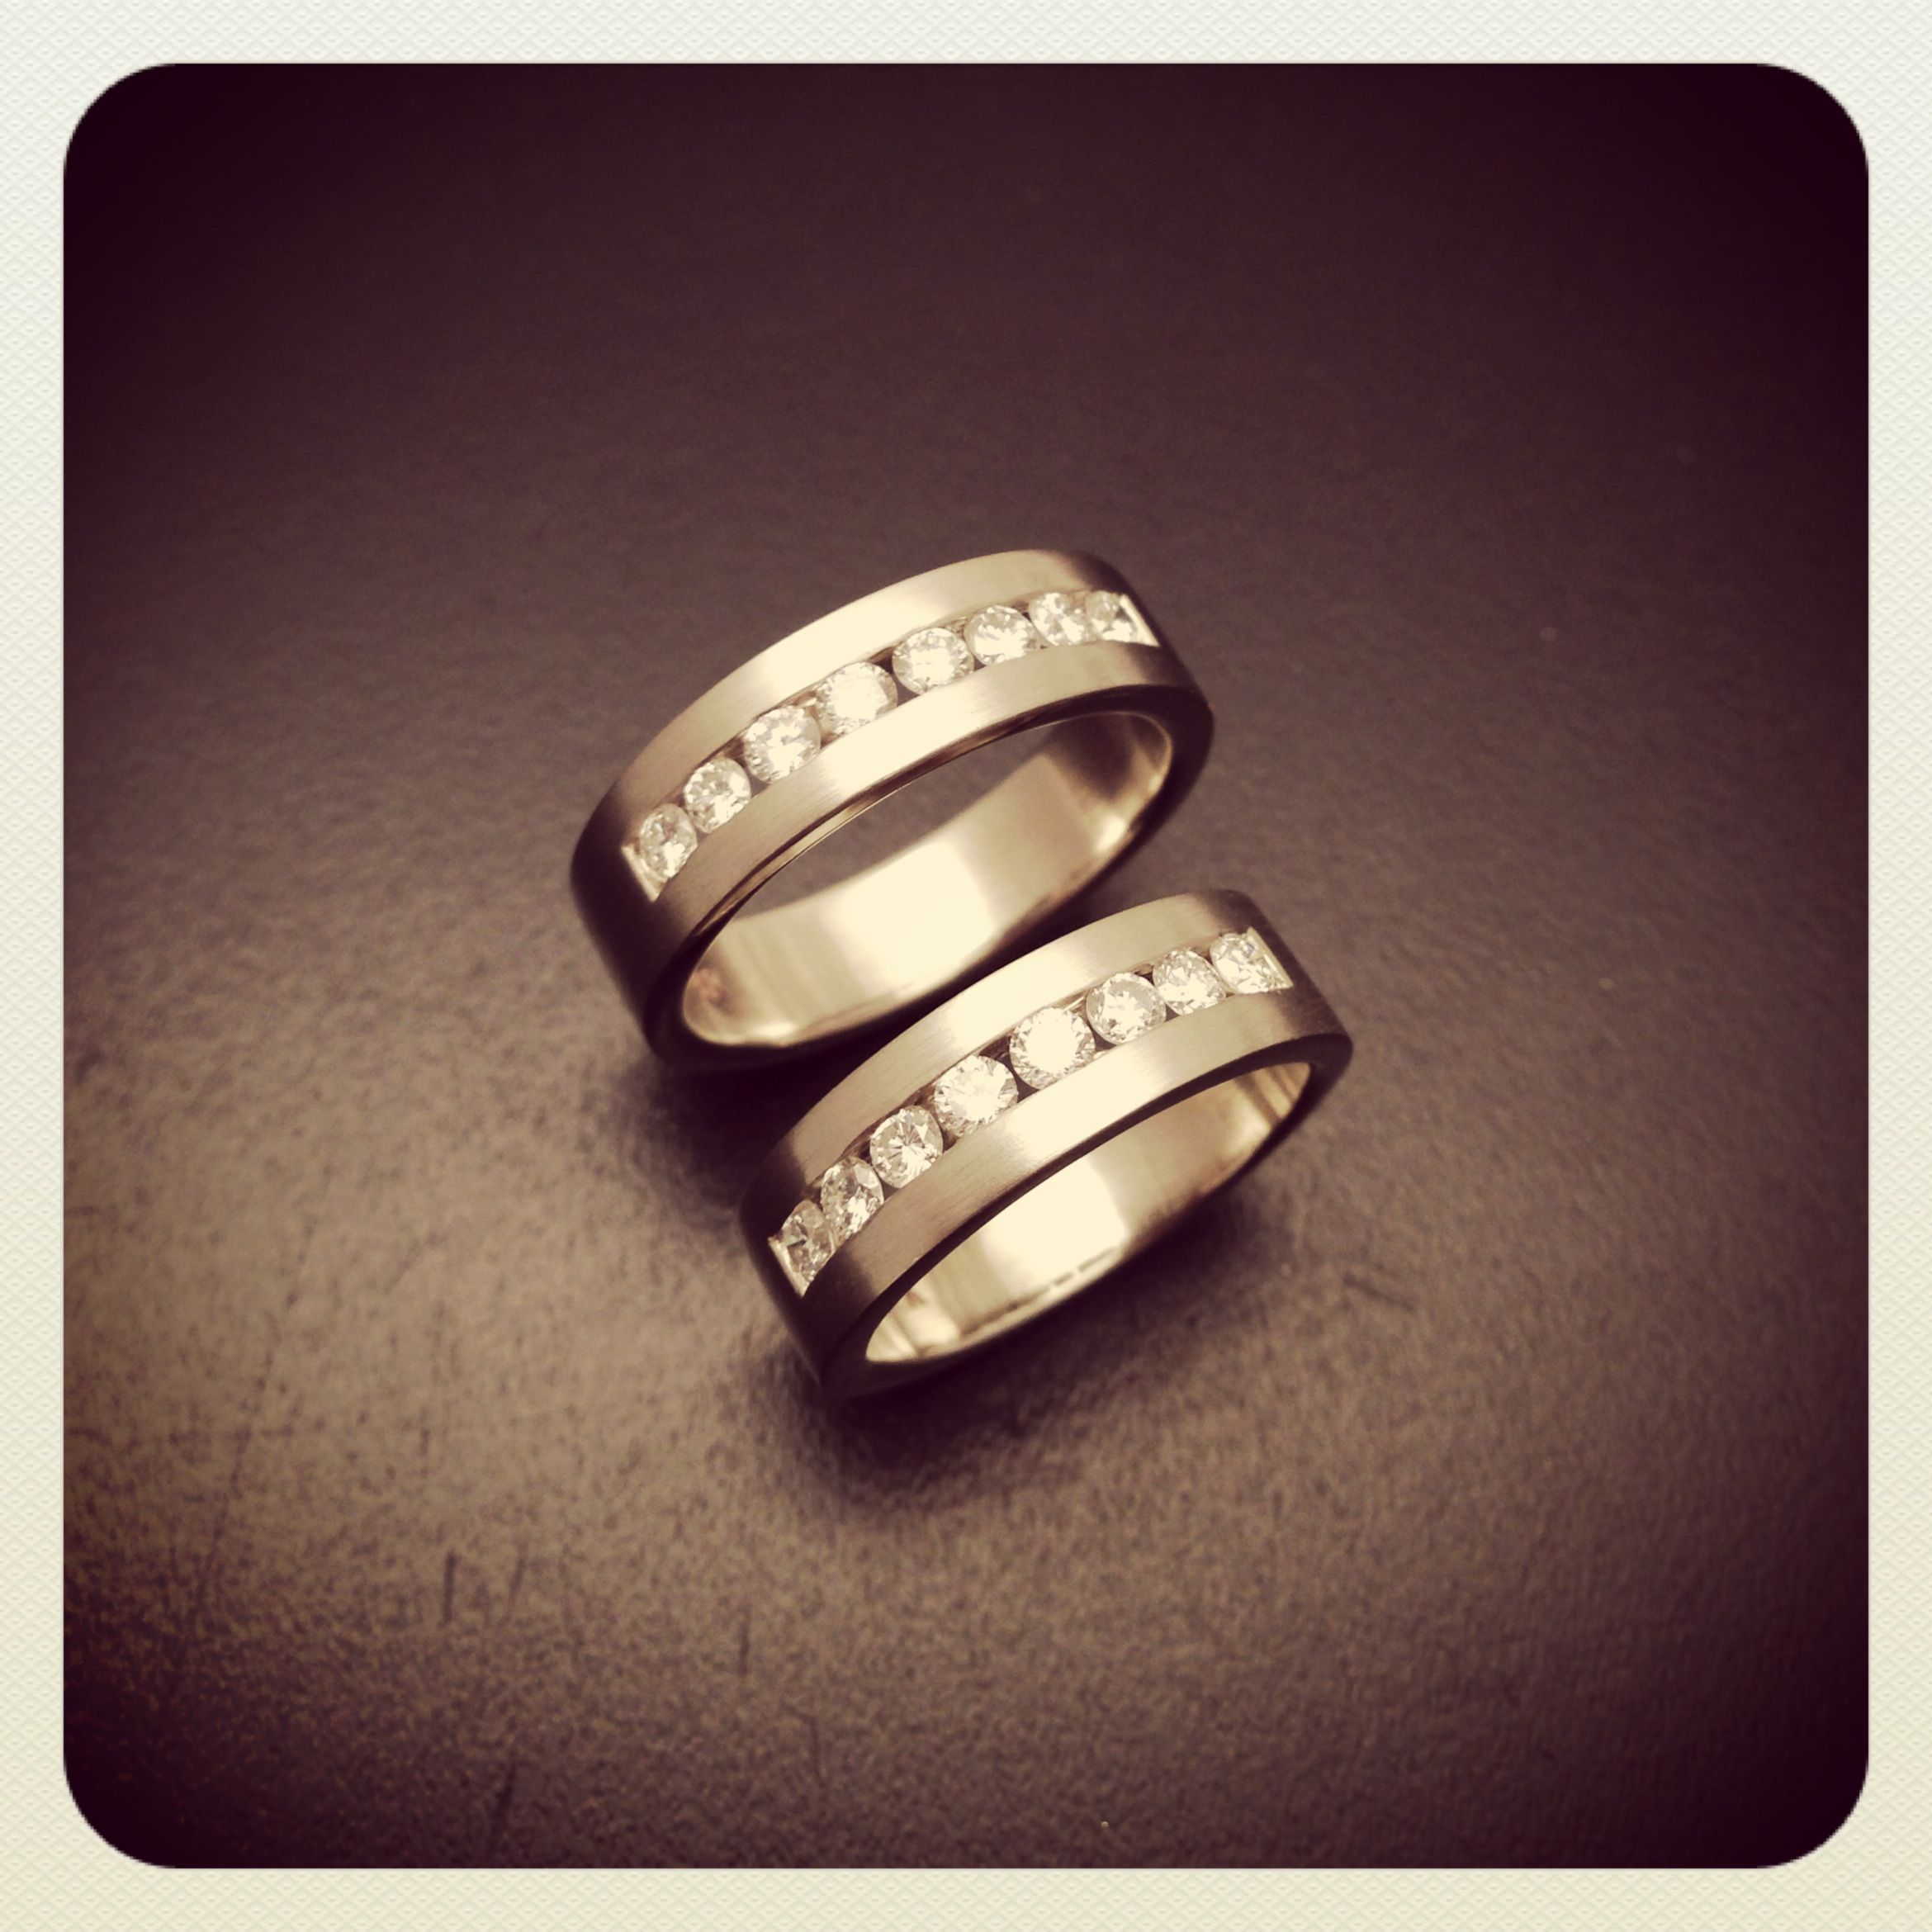 rings for equal rights... Wedding bells are ringing. Contact us at formia@live.com to discuss the special ring(s) you have in mind!